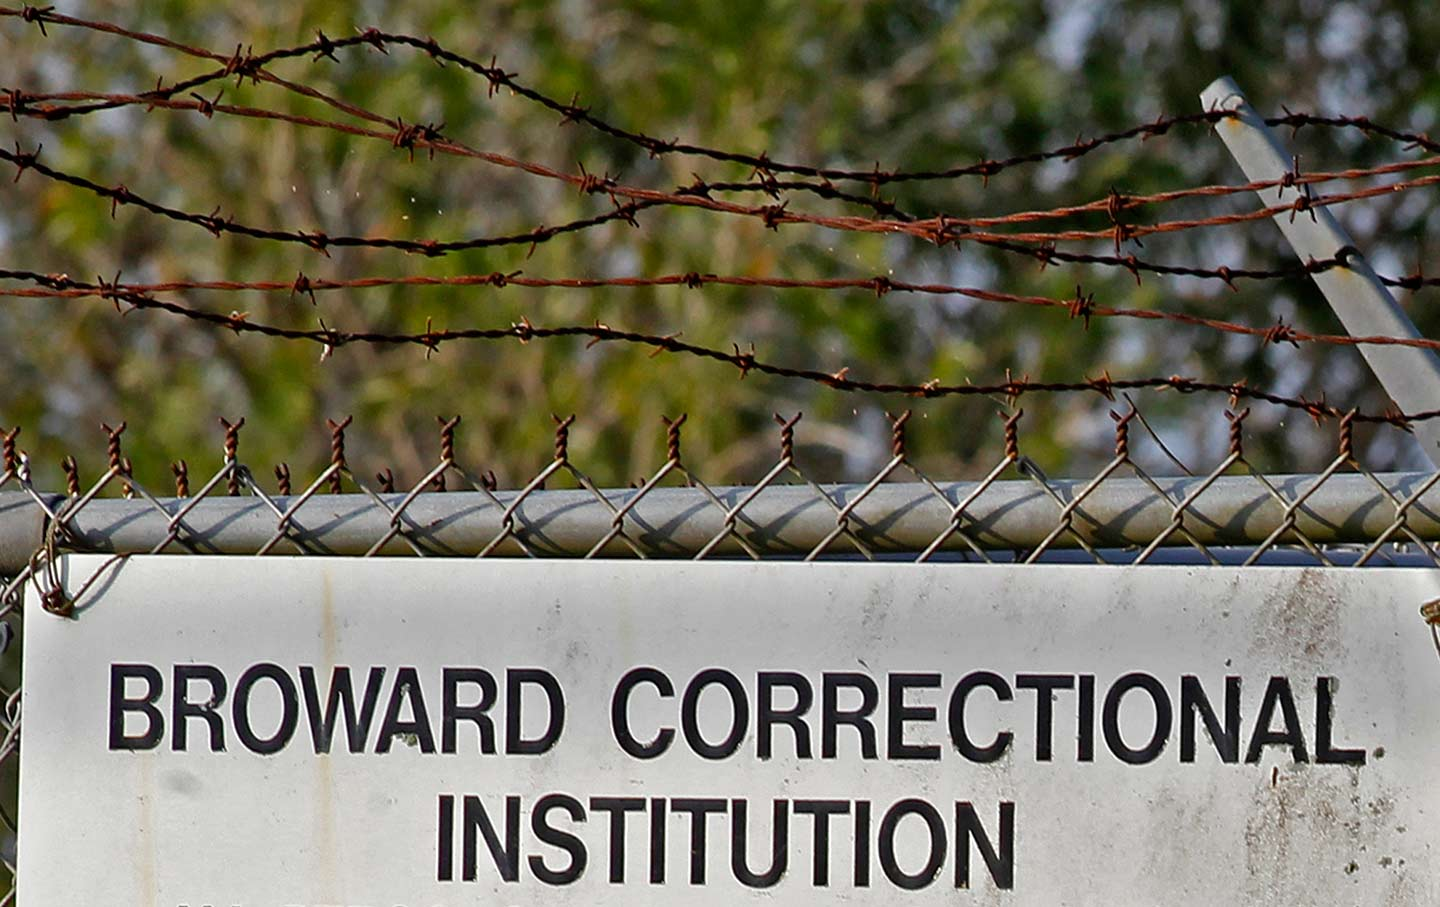 Broward Correctional Institution